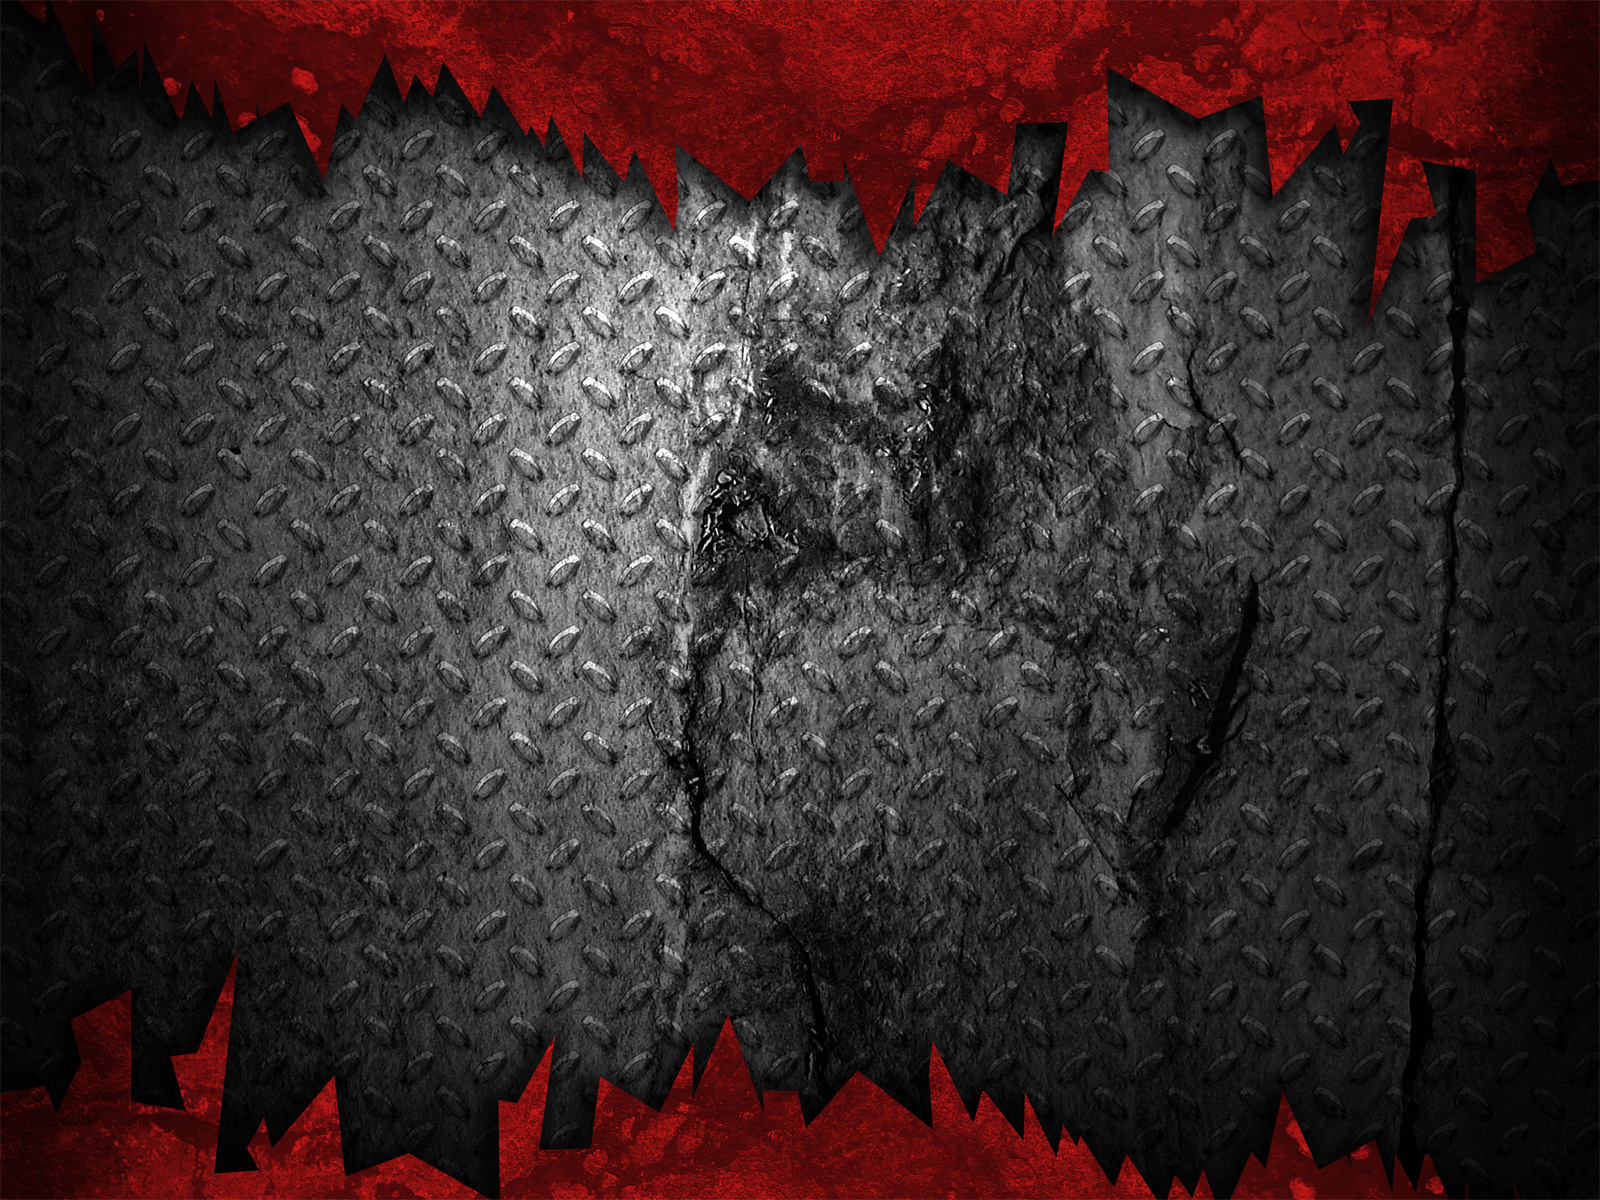 15 Halloween Psd Backgrounds Images Free Photoshop